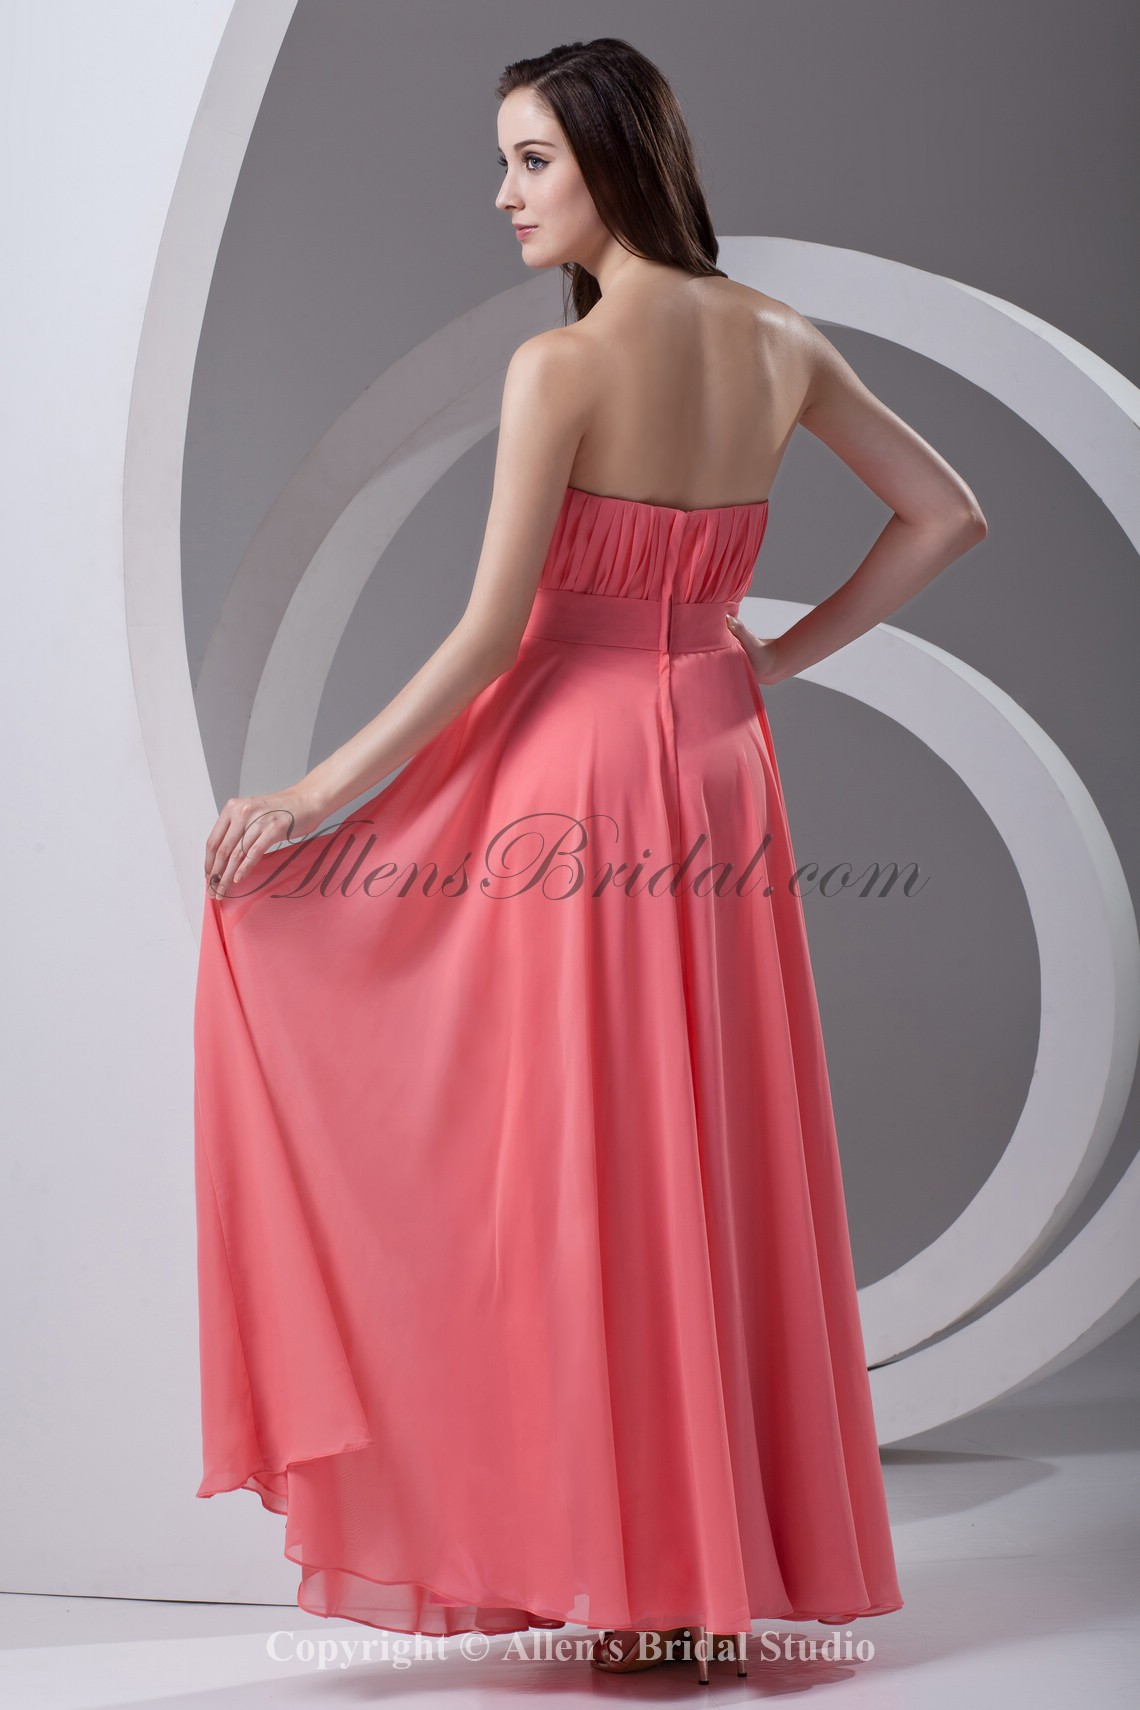 /346-2770/chiffon-strapless-neckline-column-floor-length-sash-prom-dress.jpg